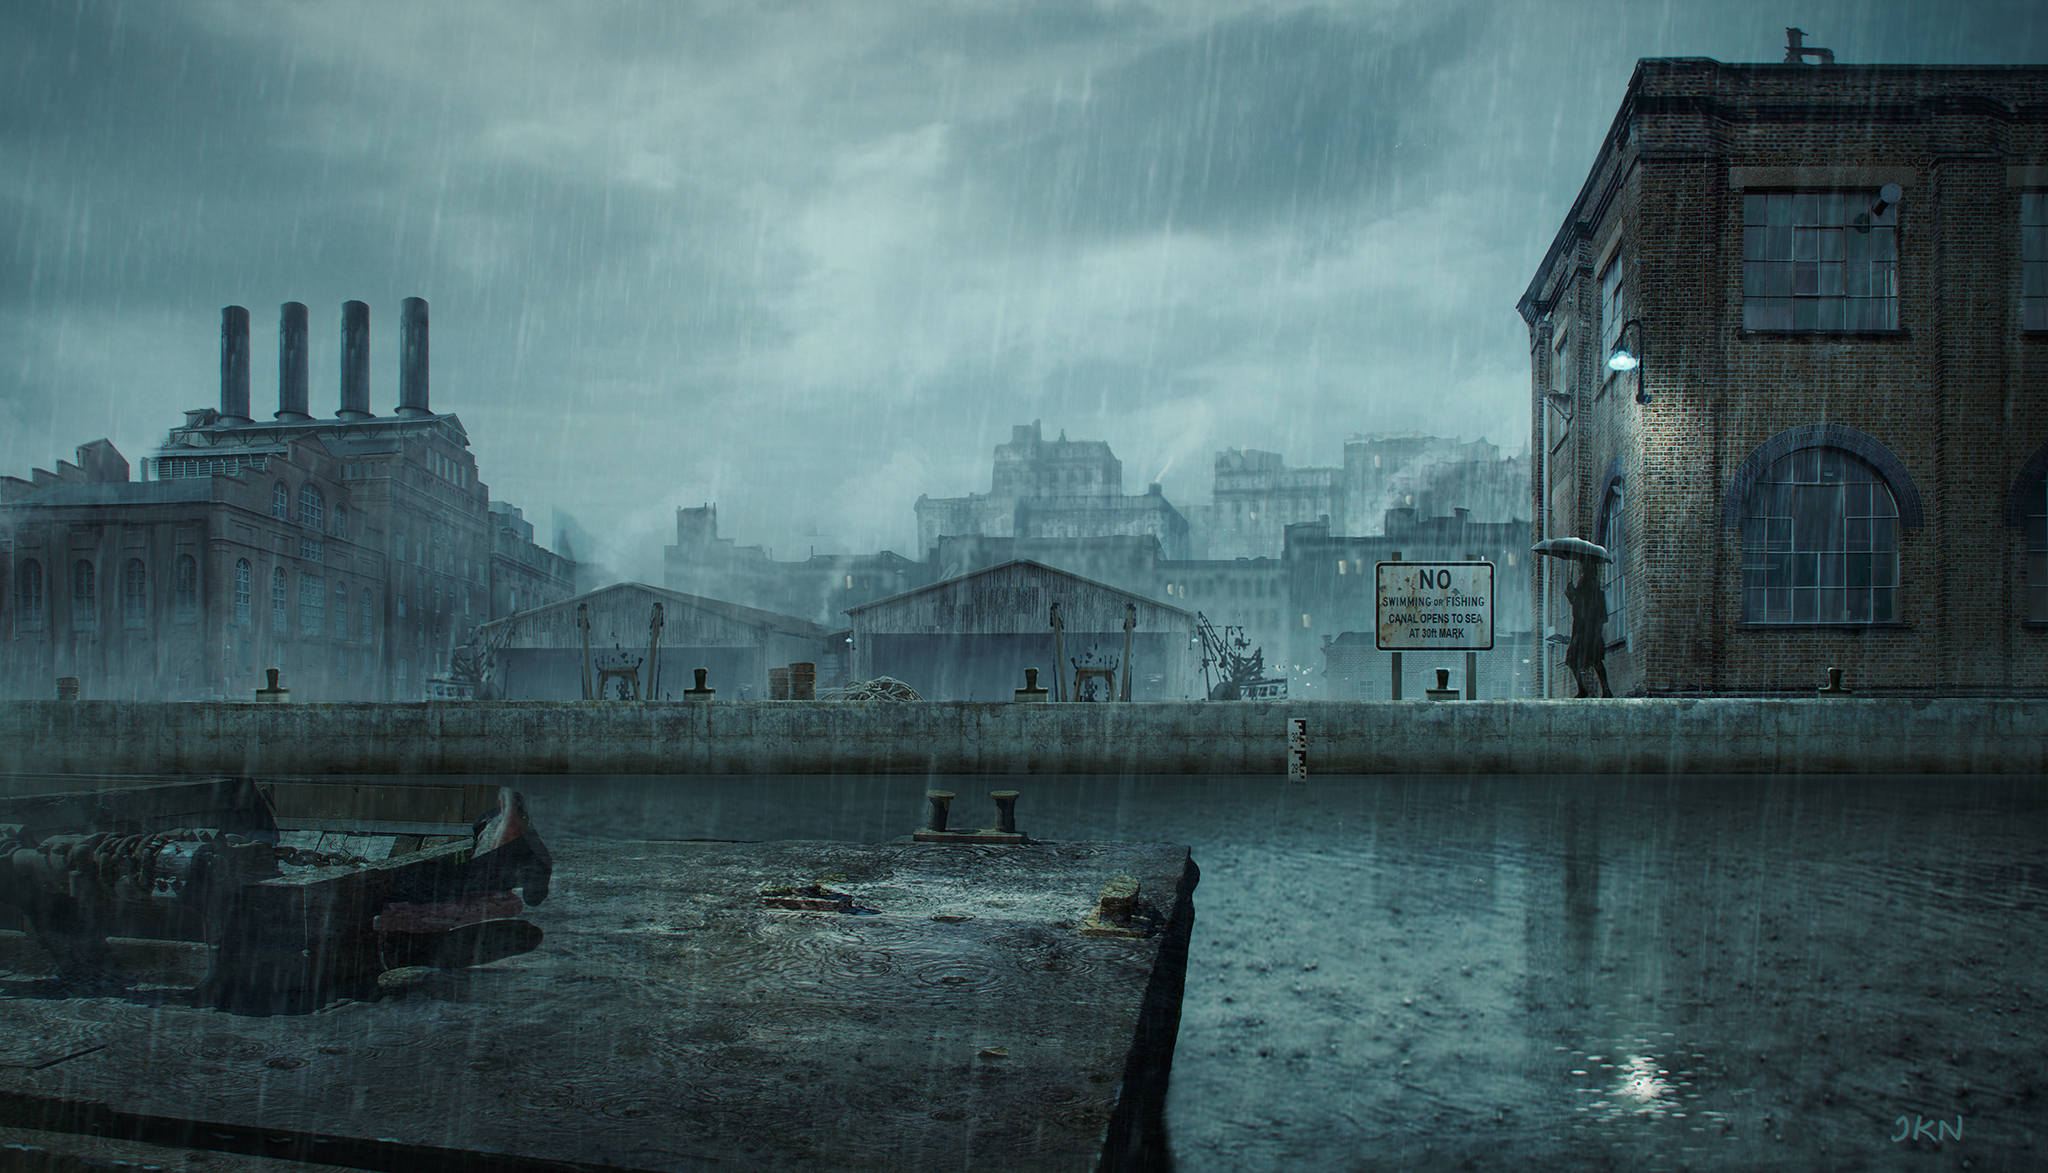 CANAL_Lookingmiddlecity_concept_v002.jpg